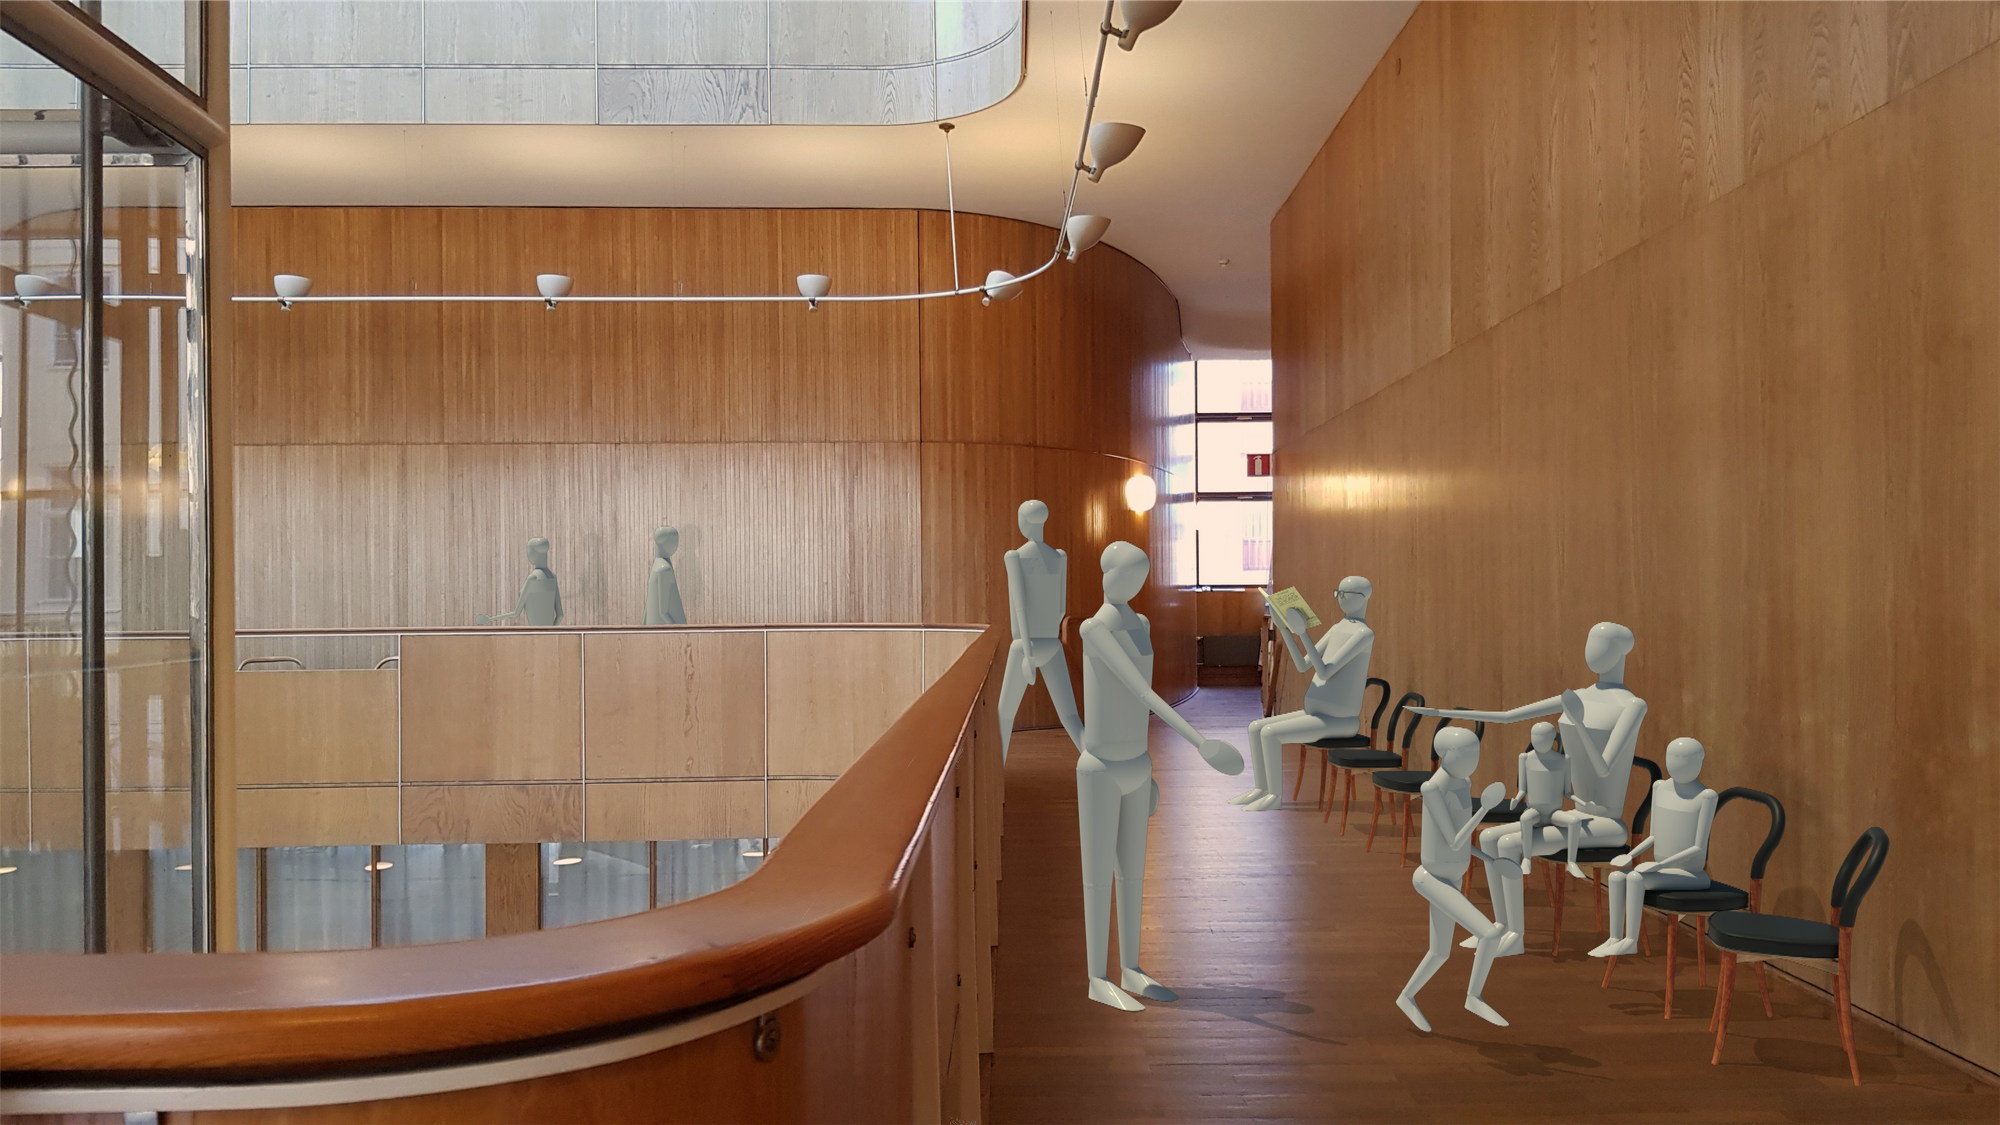 Render in Revit showing the Göteborg chairs in the Gothenburg Town Hall.